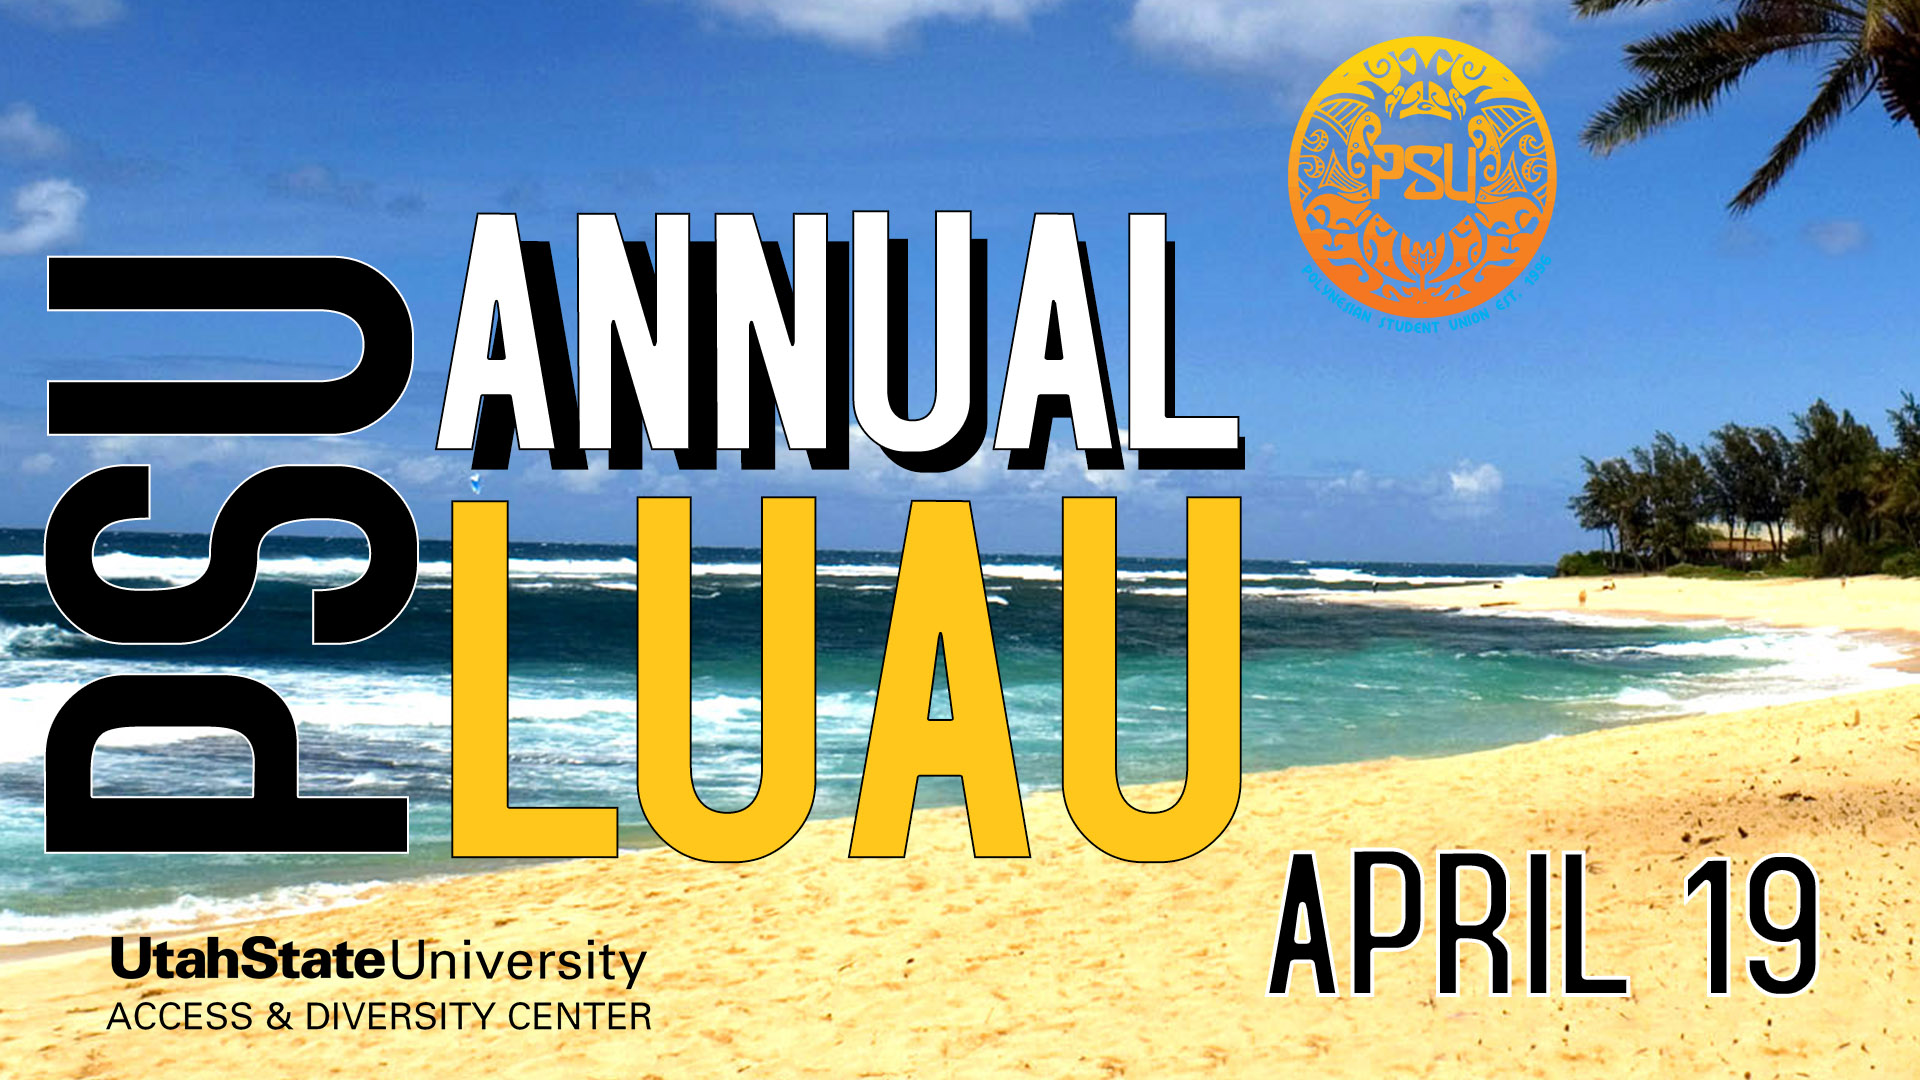 PSU annual luau April 19, 2017